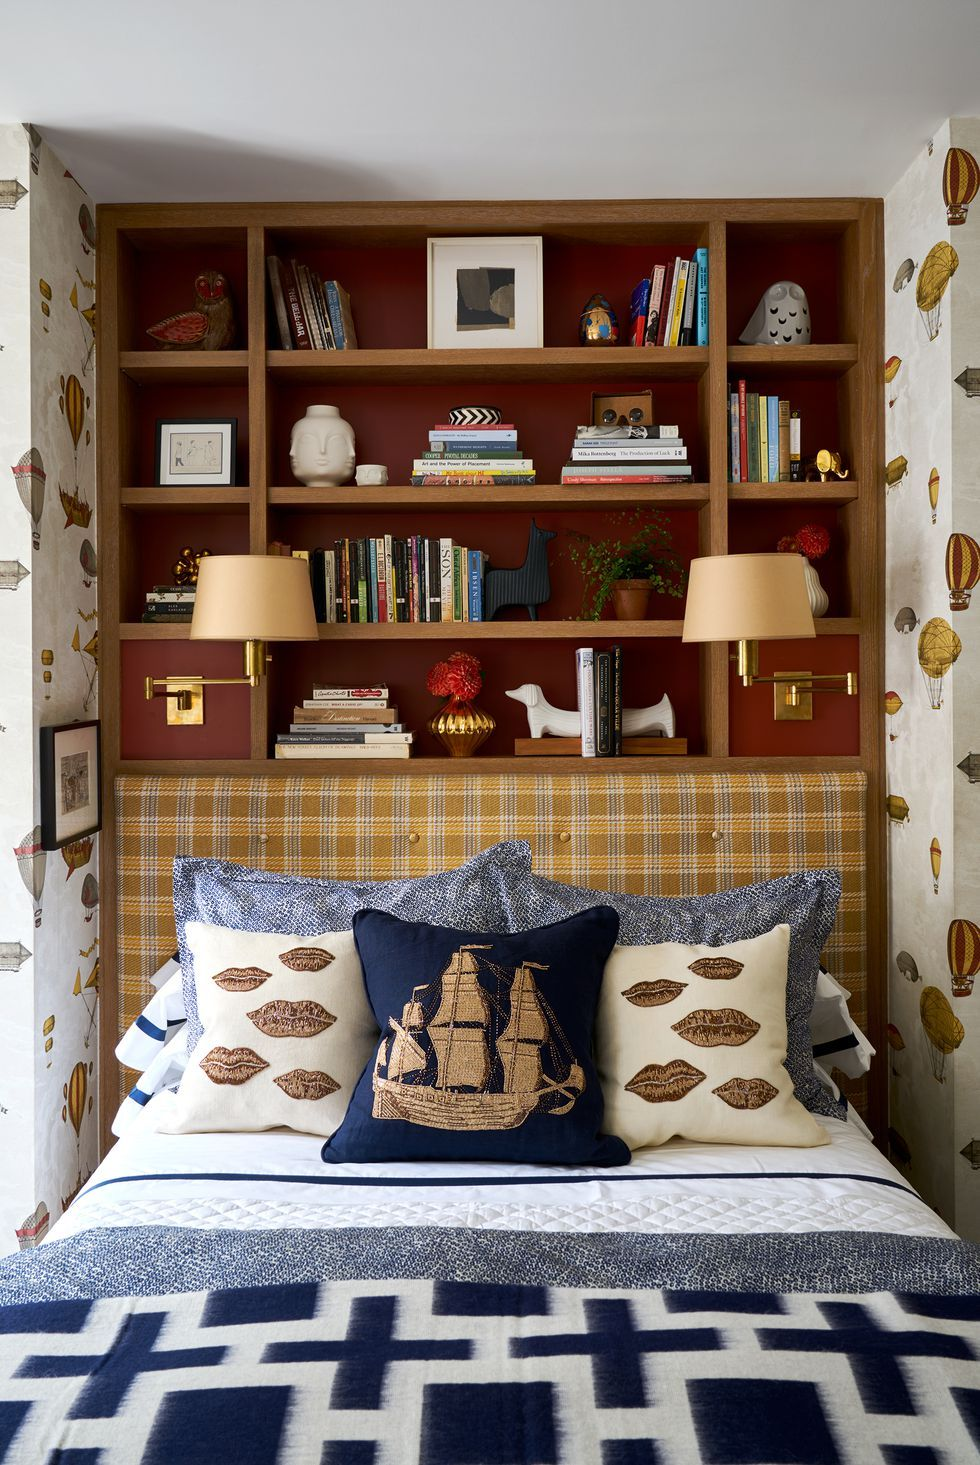 5 Cute and Simple Wall Decoration for Your Bedroom - Talkdecor on Simple But Cute Room Ideas  id=58912